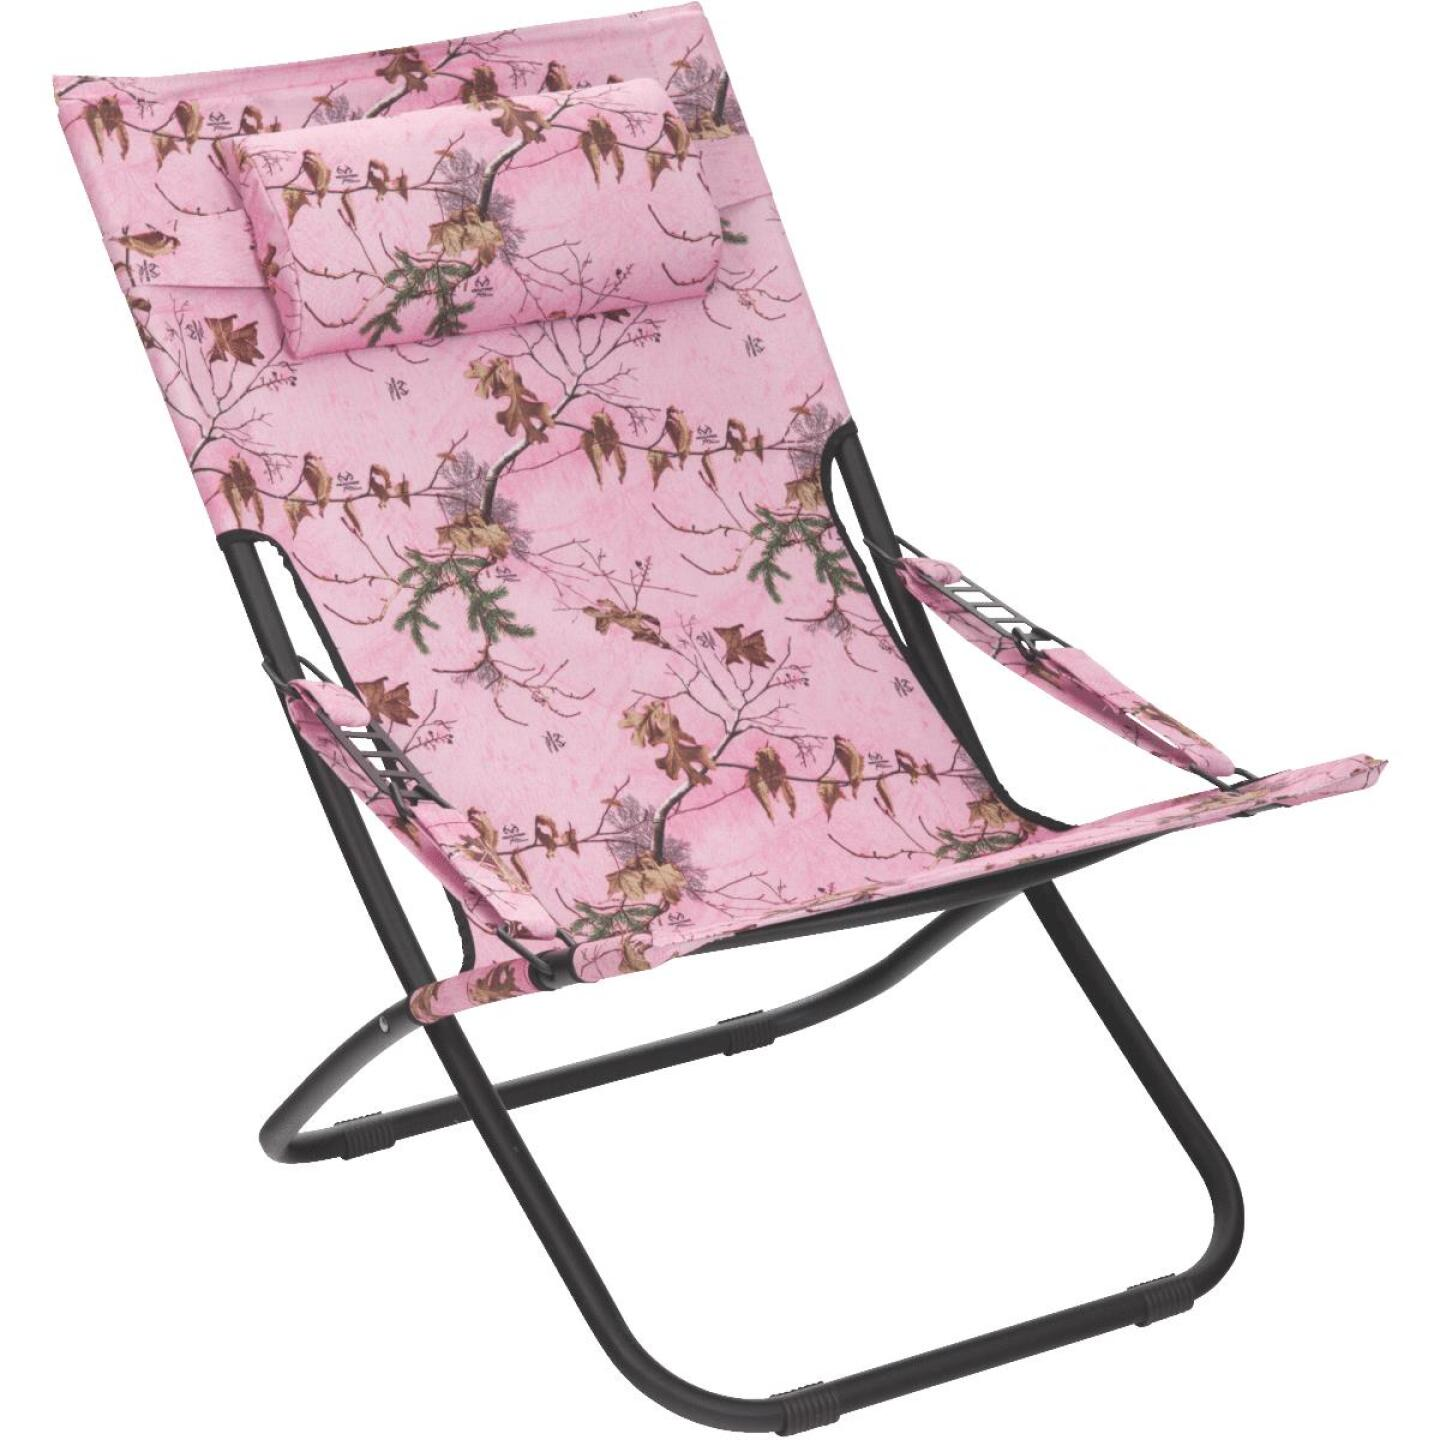 Outdoor Expressions Folding Pink Real Tree Hammock Chair Image 1